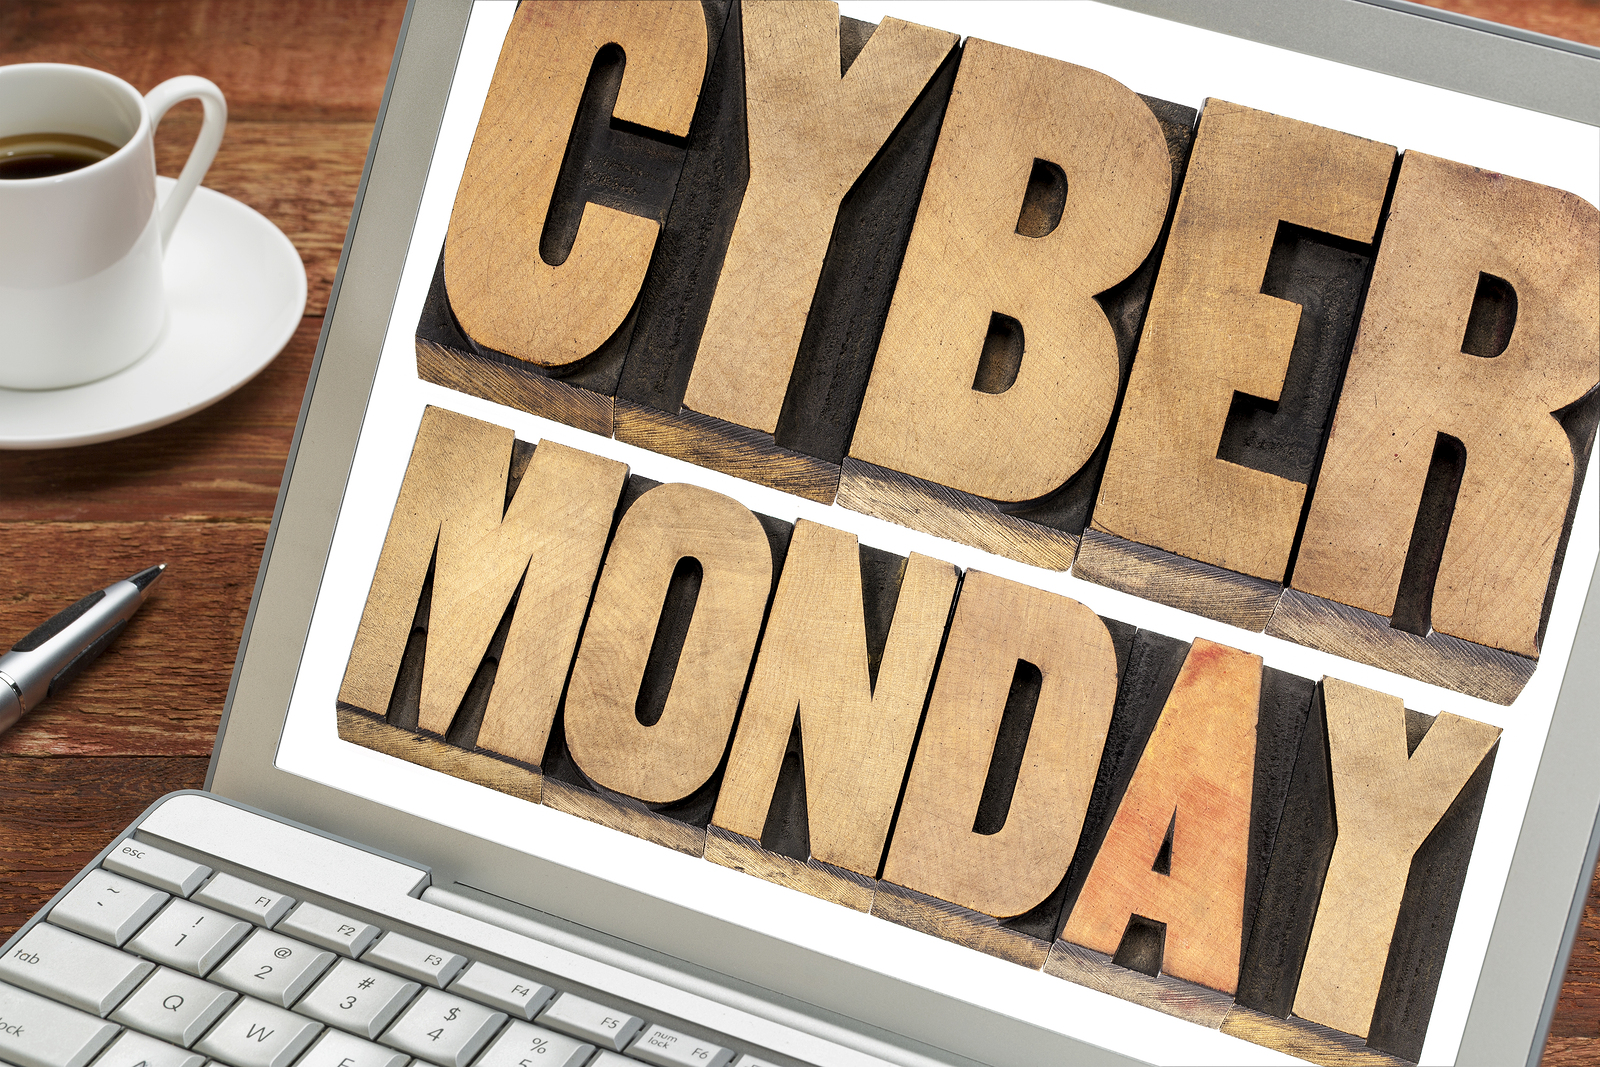 Cyber Monday shopping tips